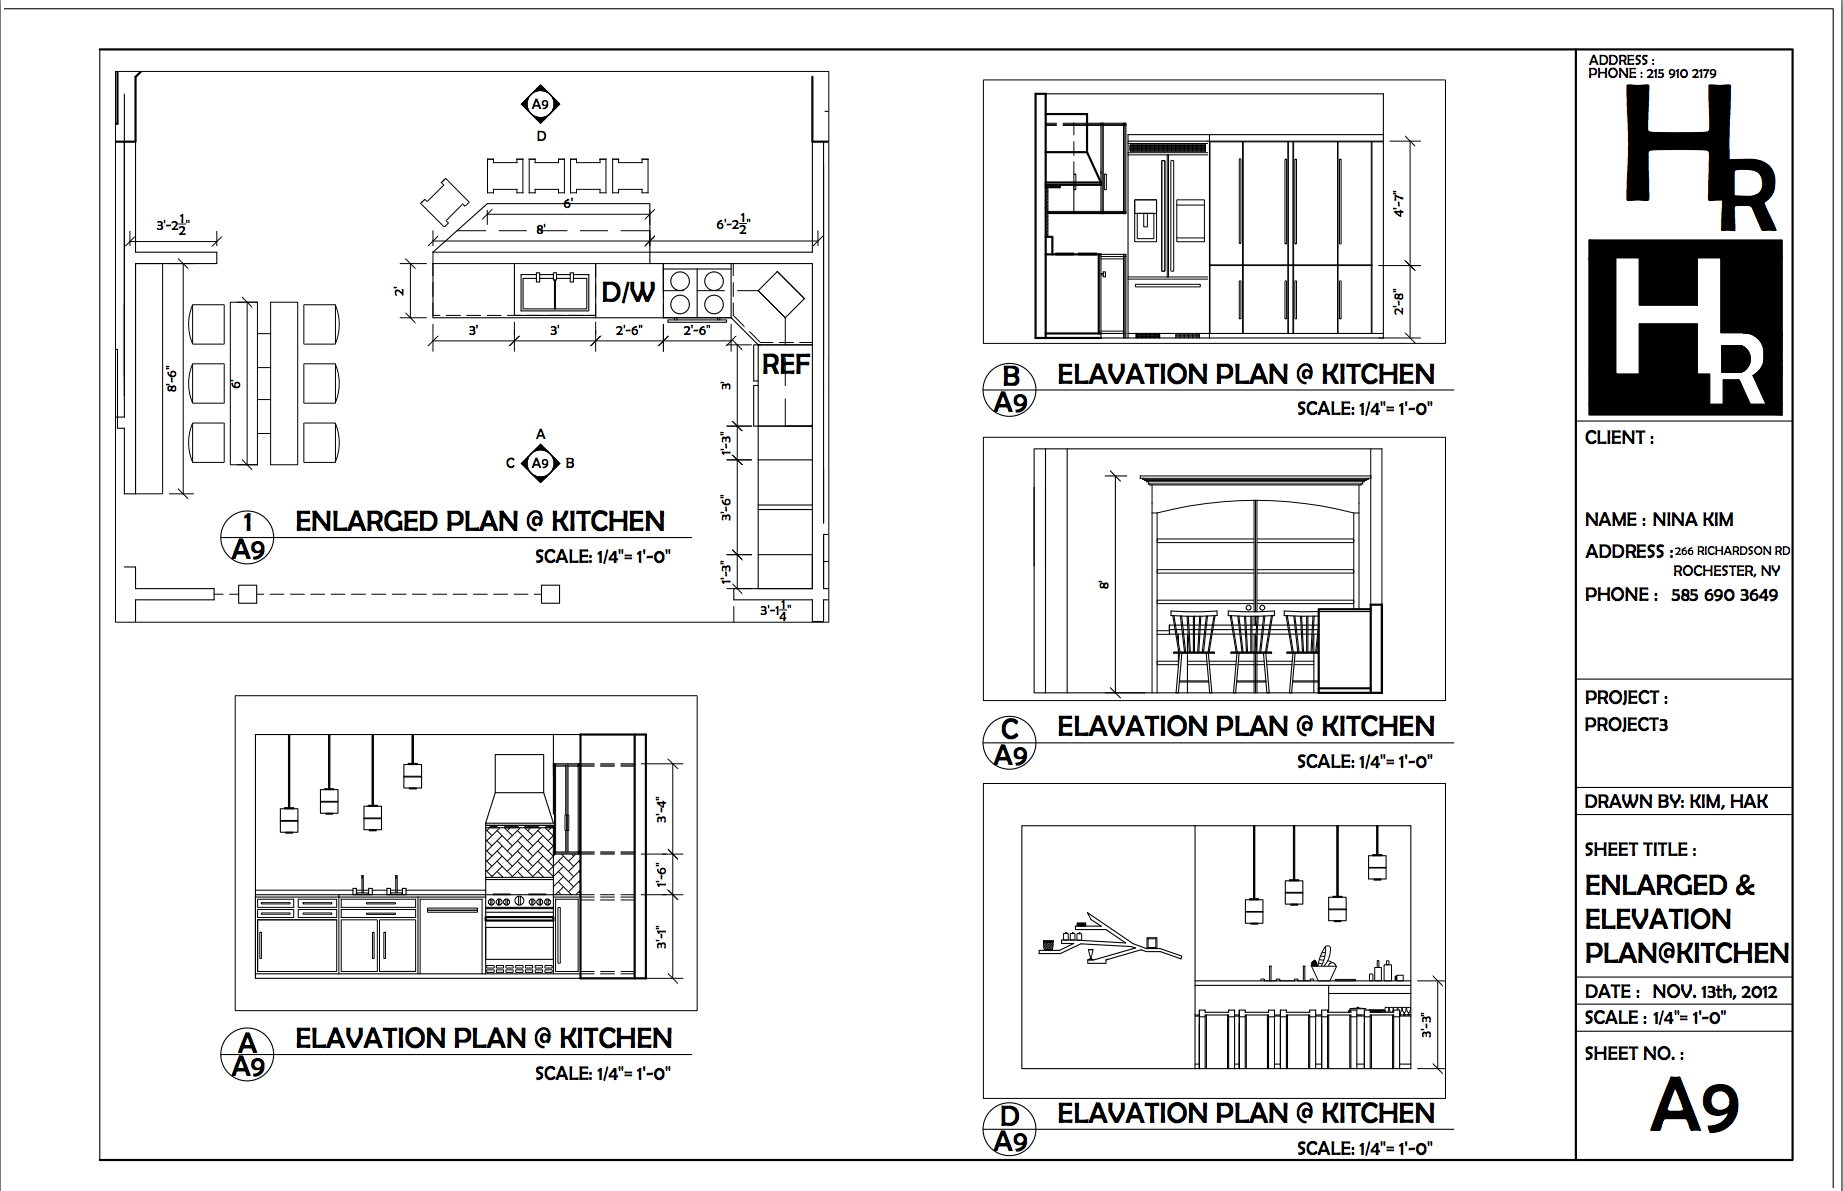 hight resolution of kitchen enlarged and elevation plan elevation plan autocad floor plans house floor plans